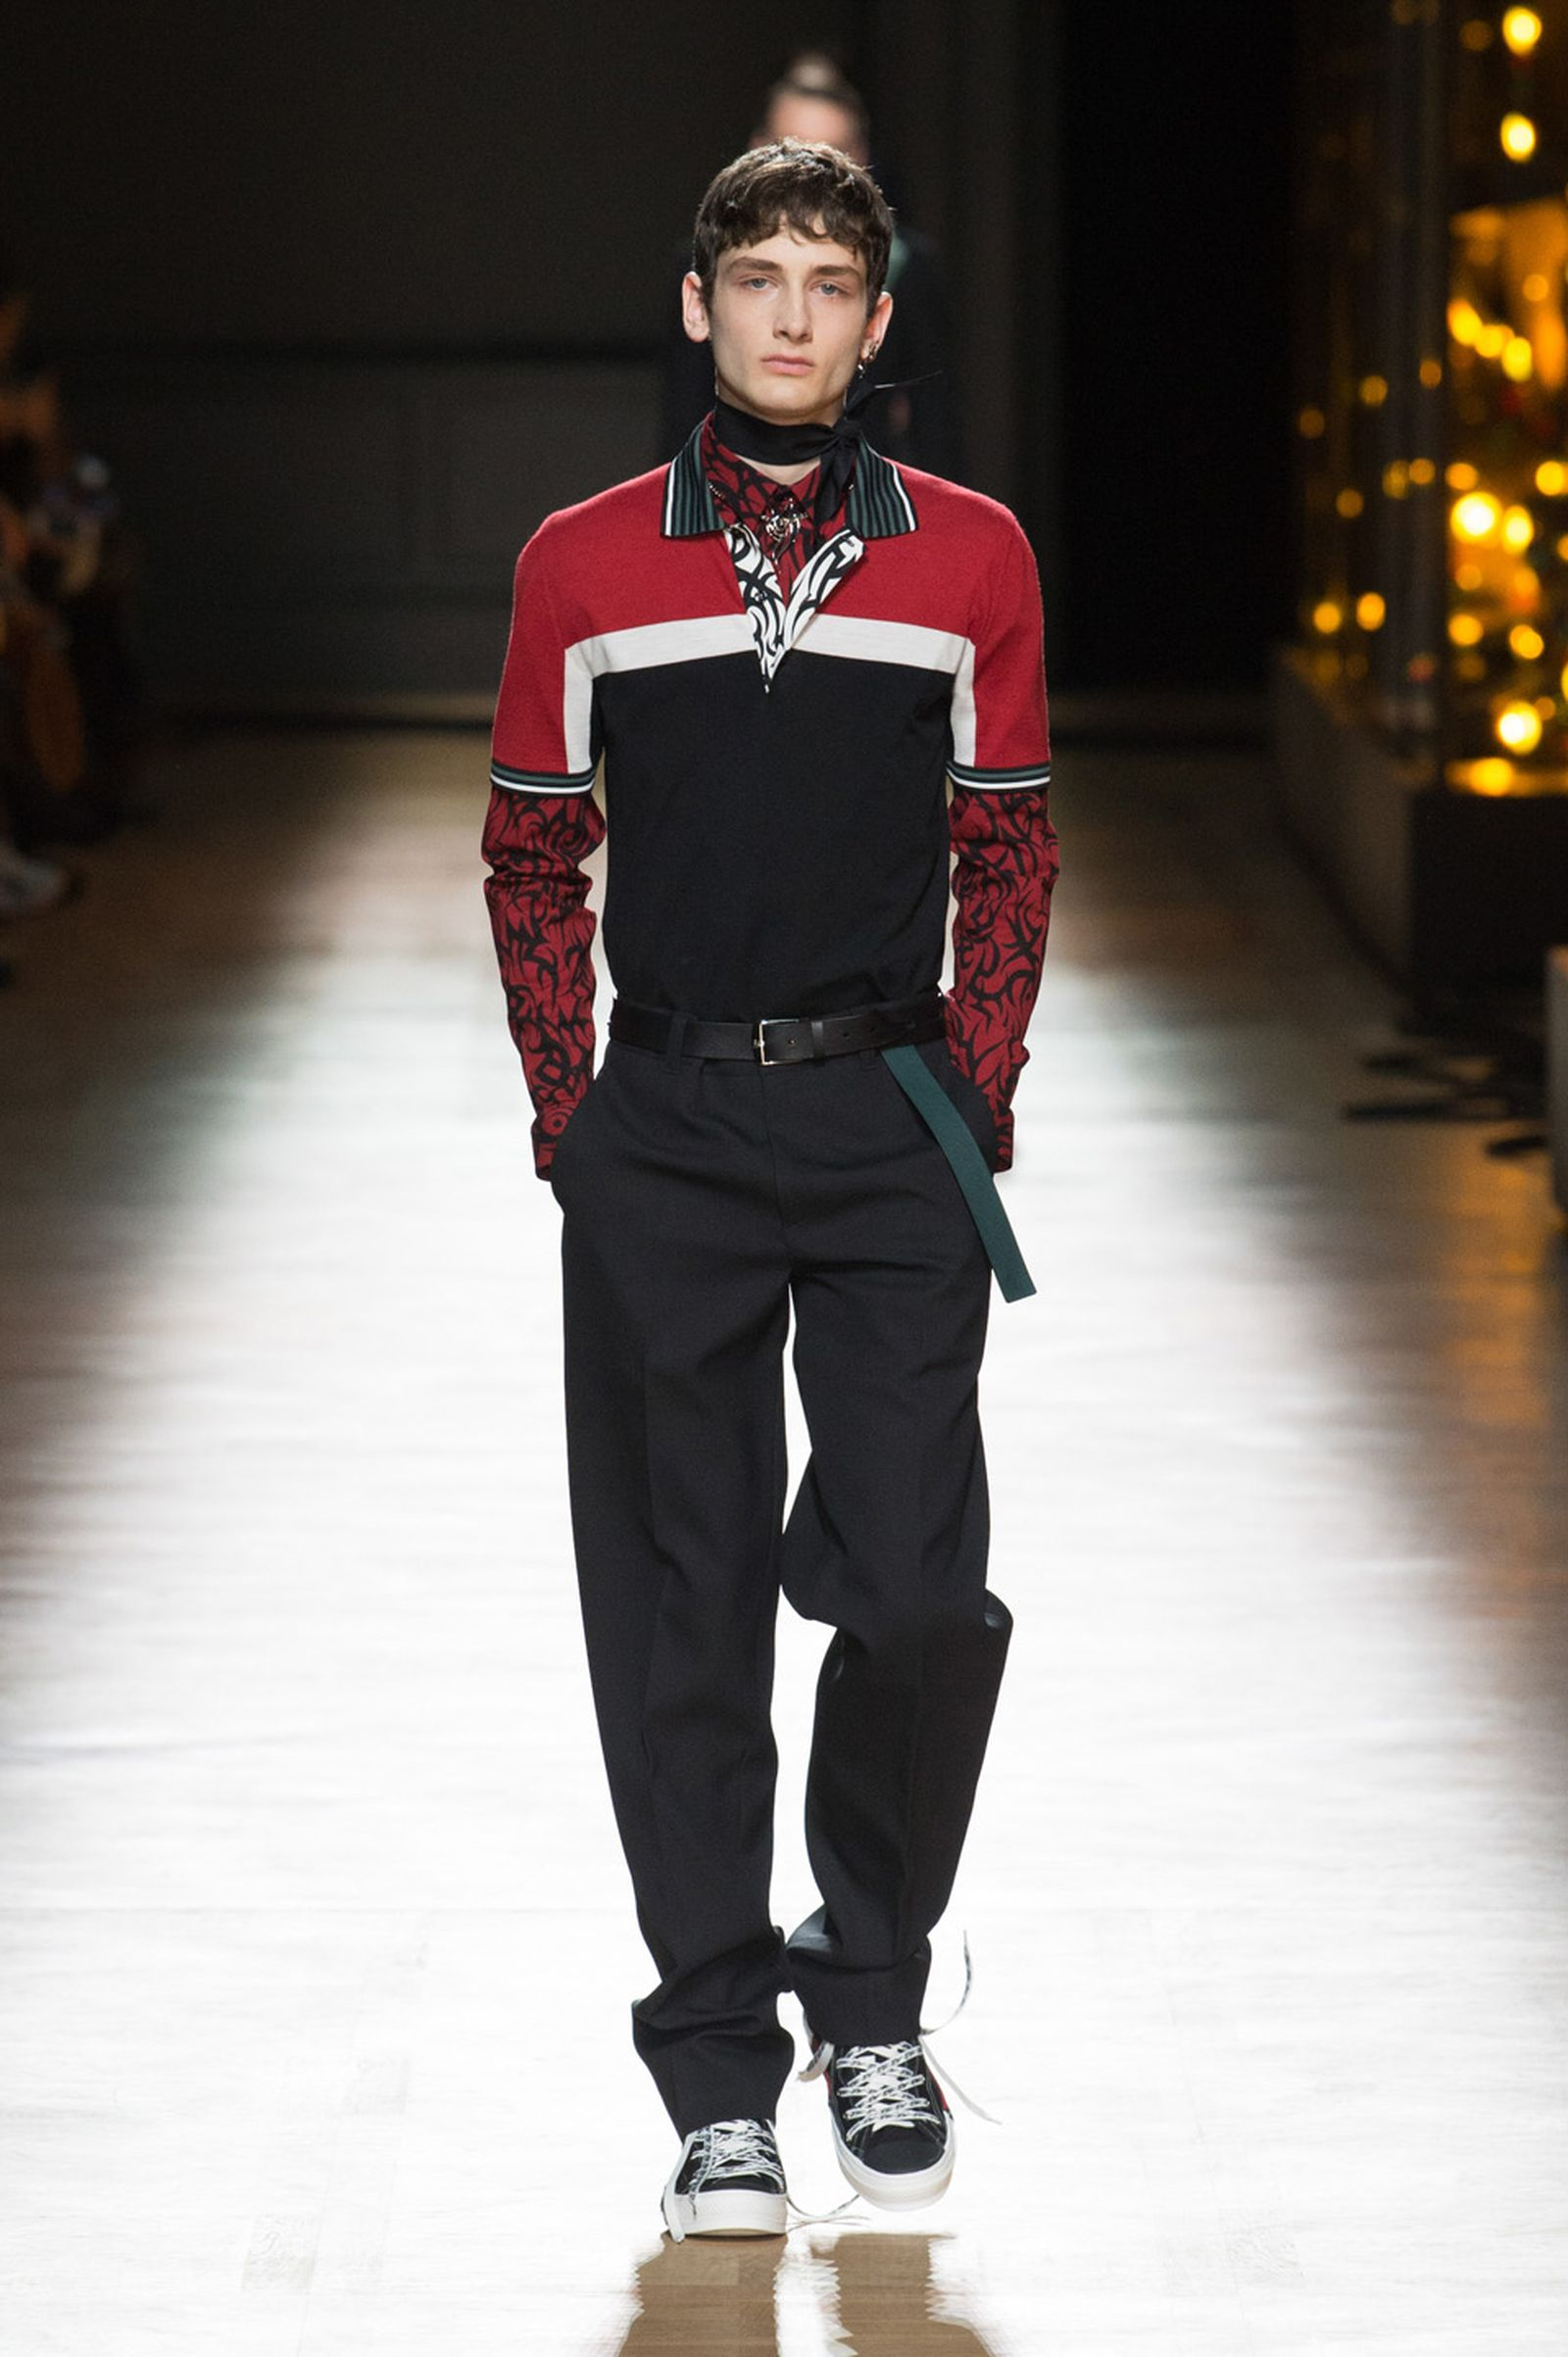 DIOR HOMME WINTER 18 19 BY PATRICE STABLE look13 Fall/WInter 2018 runway